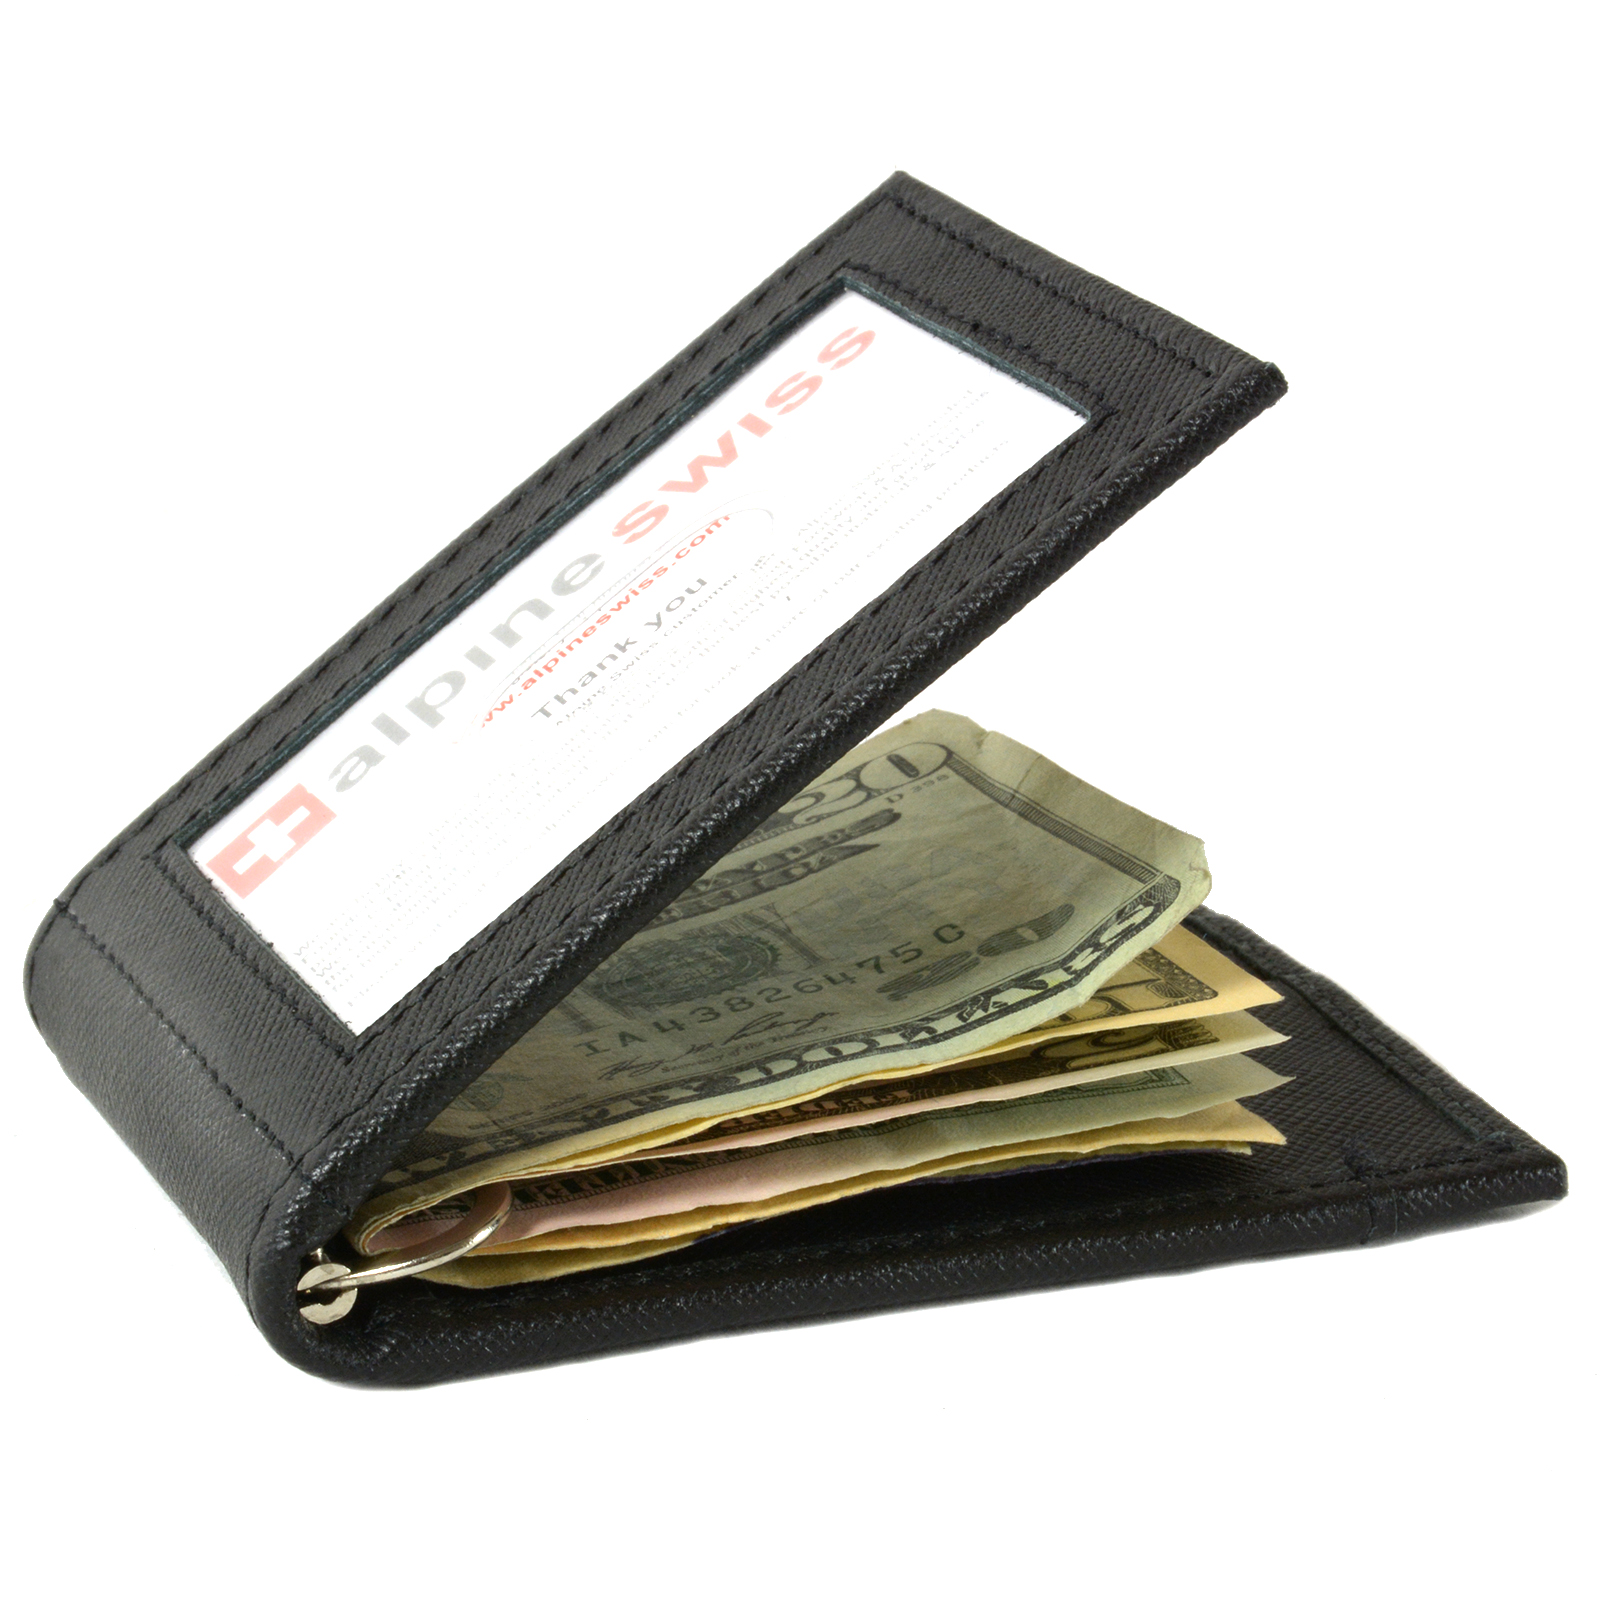 Alpine-Swiss-Mens-Bifold-Money-Clip-Spring-Loaded-Leather-ID-Front-Pocket-Wallet thumbnail 37